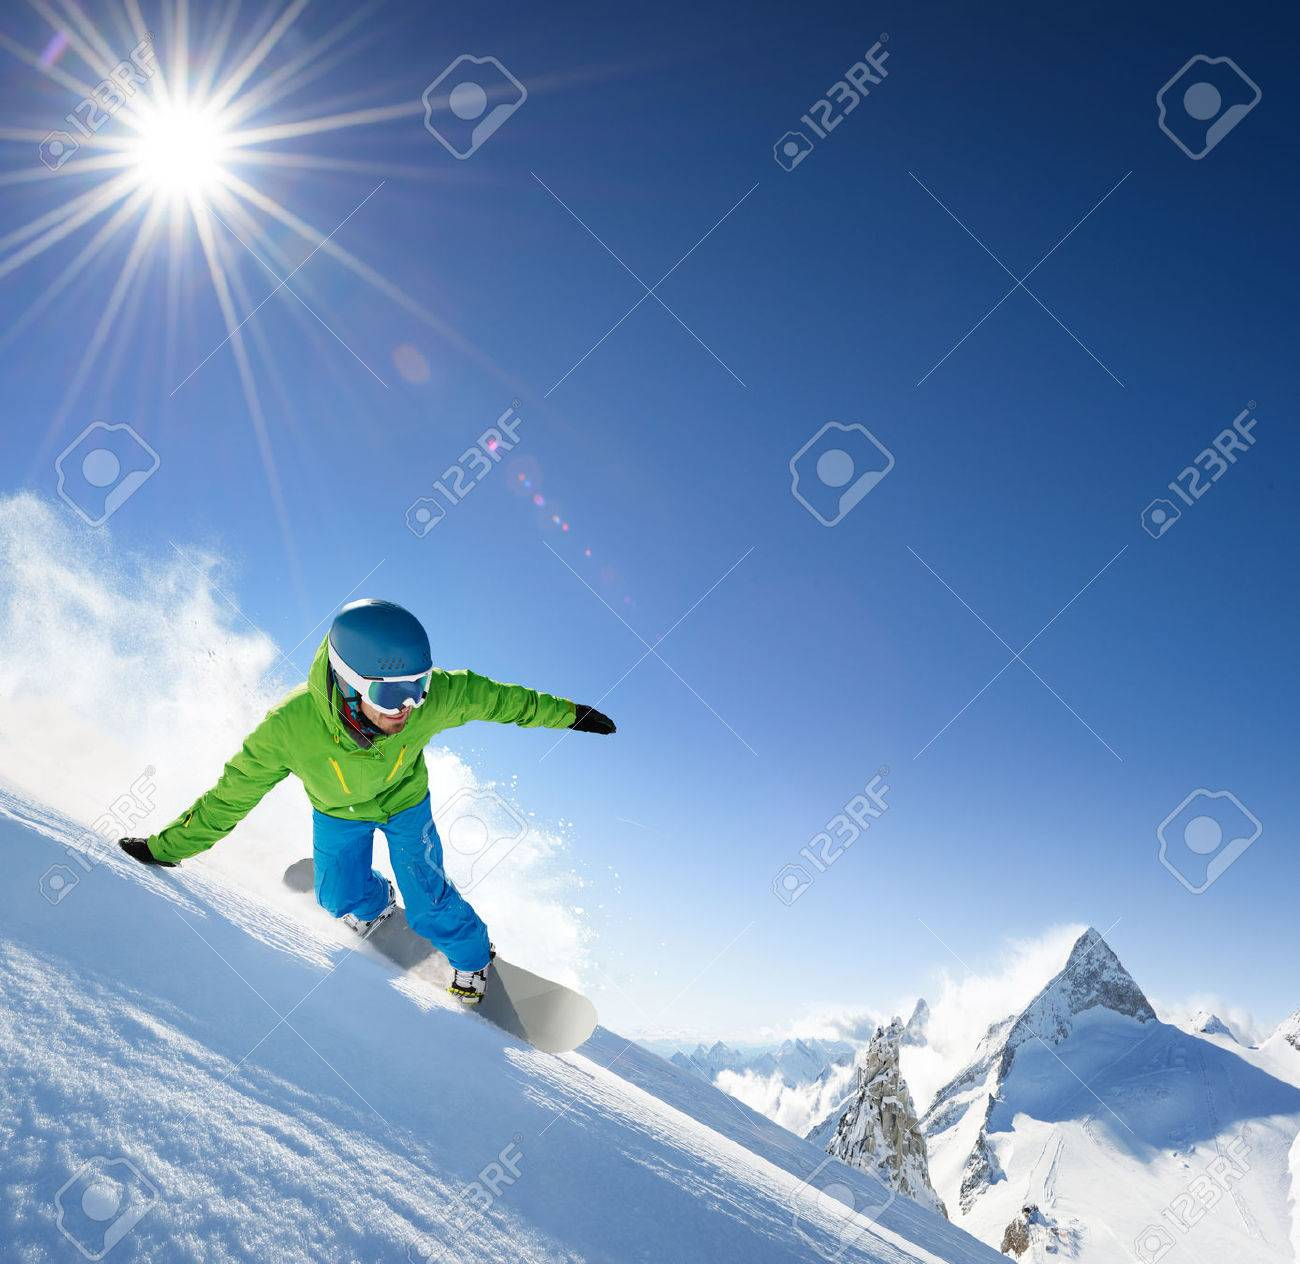 Snowboarder skiing in high mountains. - 43953029